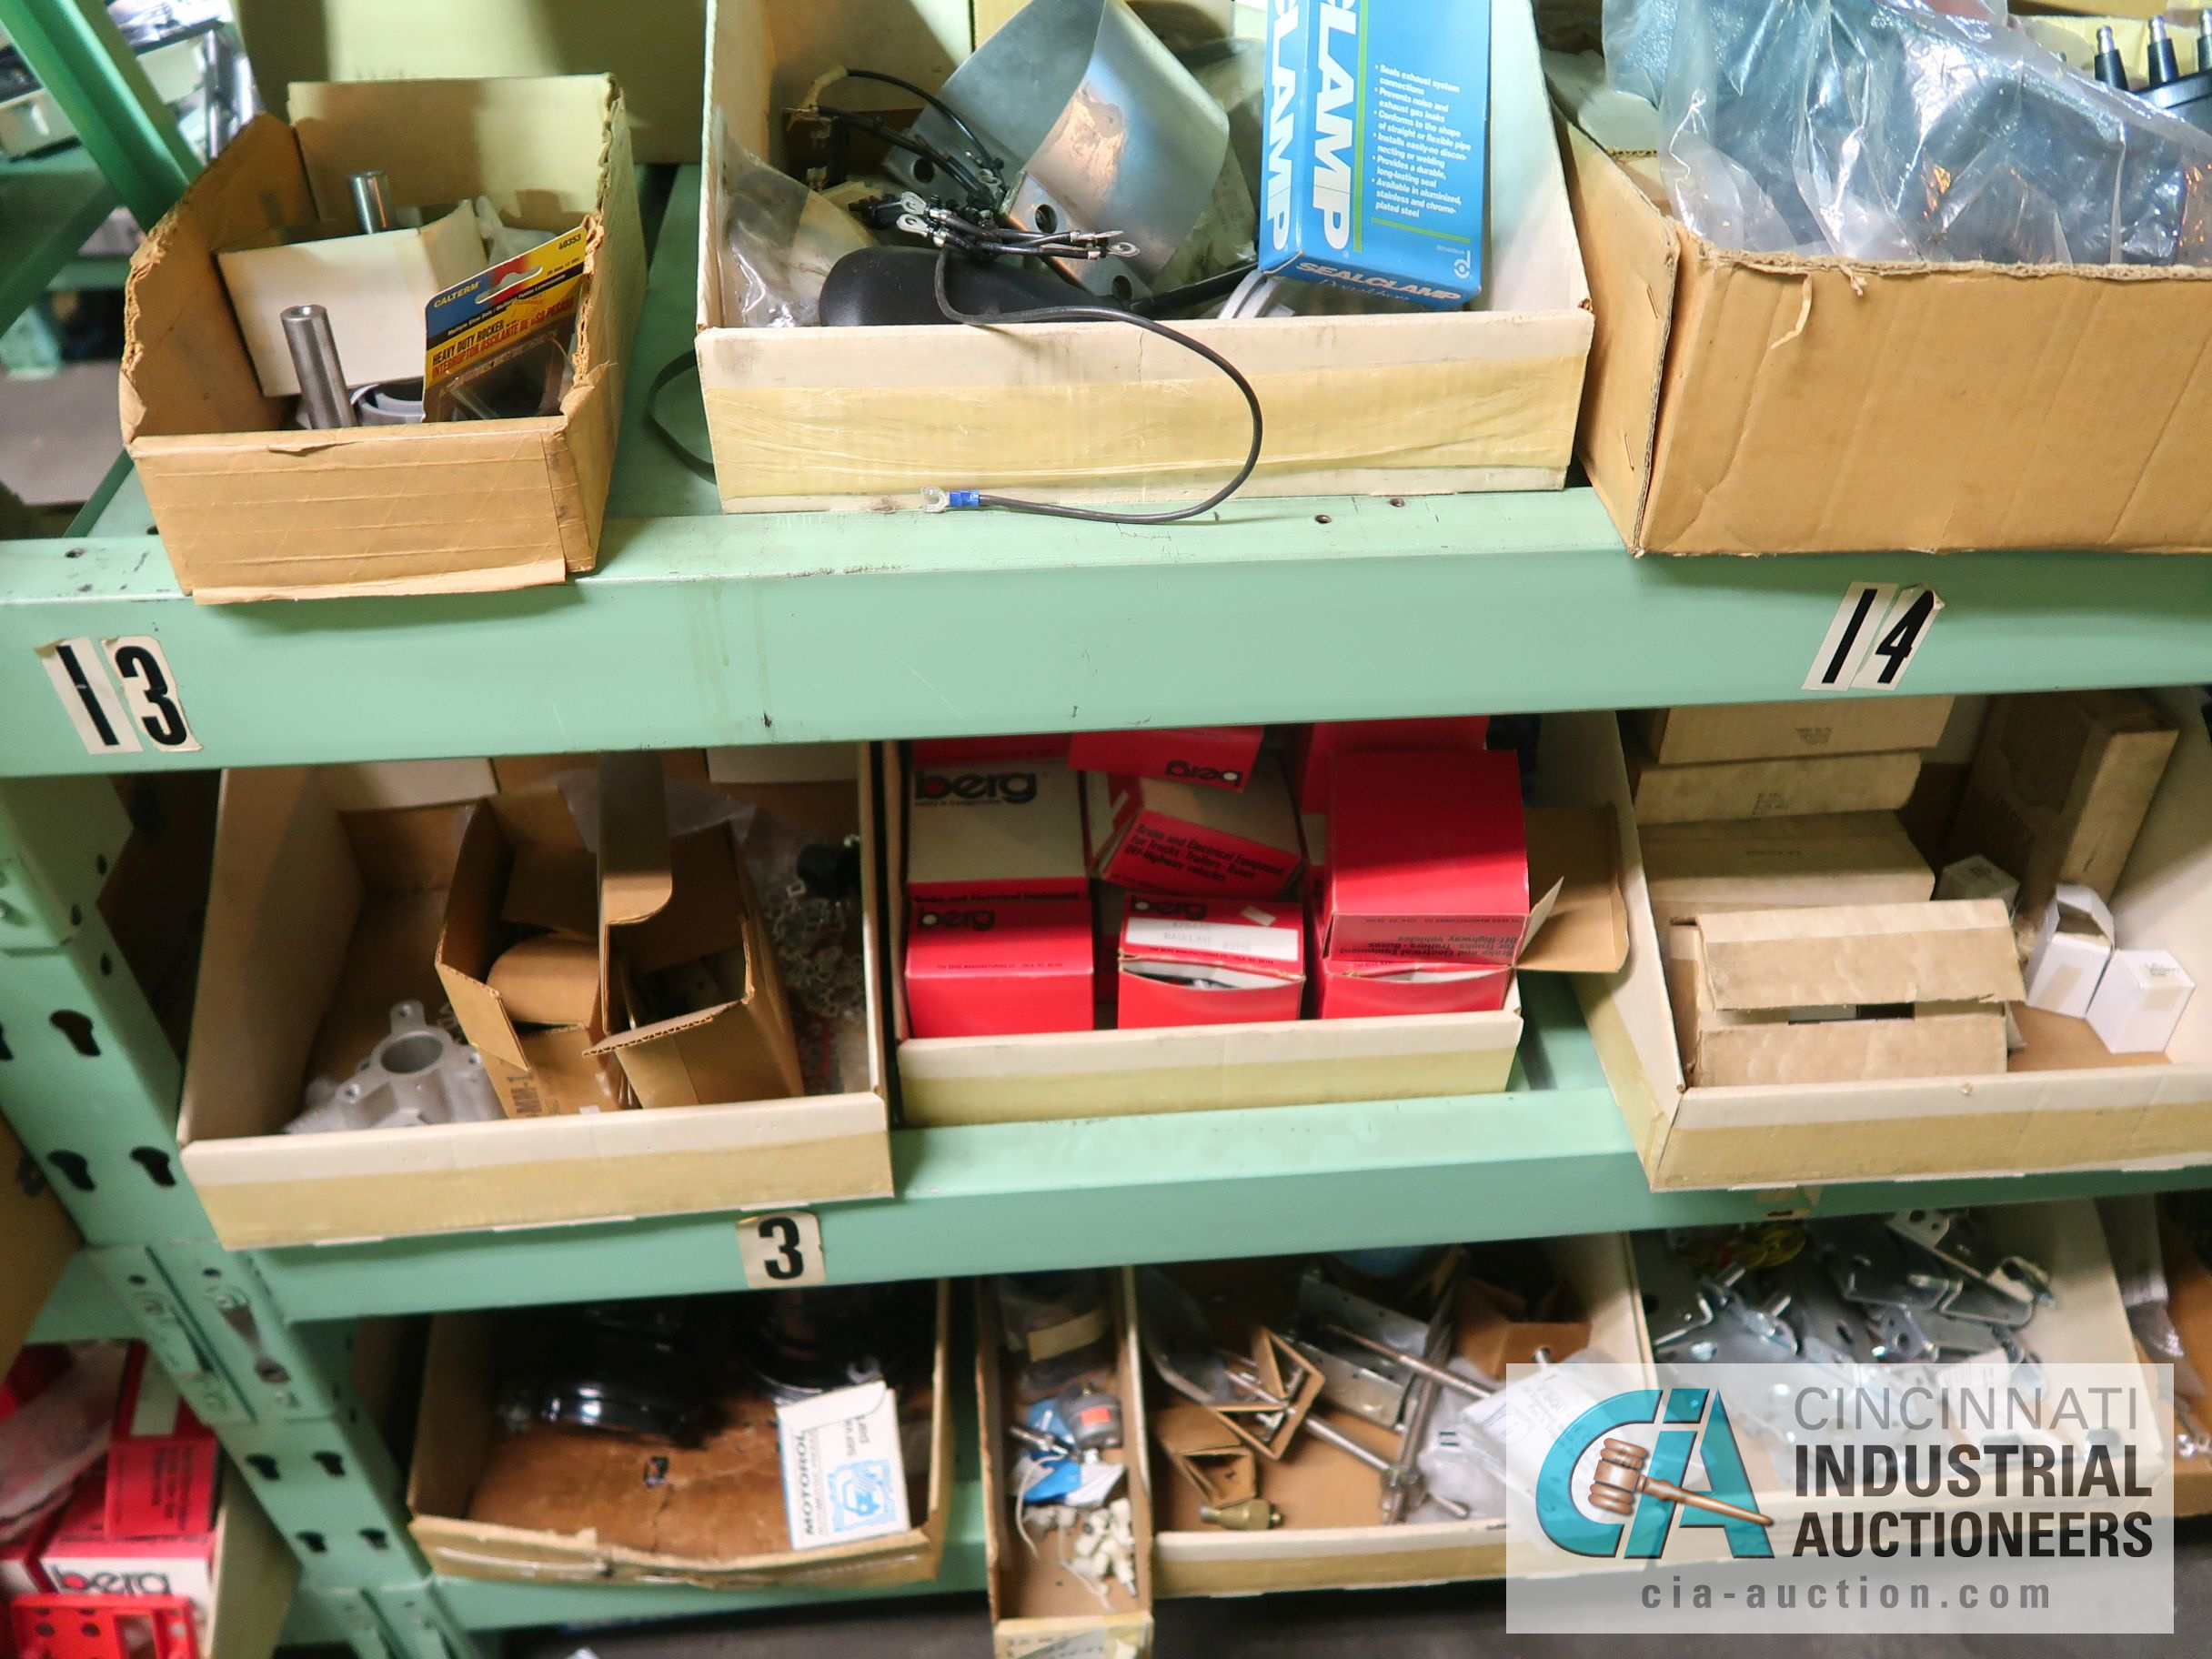 CONTENTS OF (5) RACKS INCLUDING MISCELLANEOUS AUTOMOTIVE PARTS, LIGHTS, FILTERS, ENGINE PARTS, RIMS, - Image 9 of 29